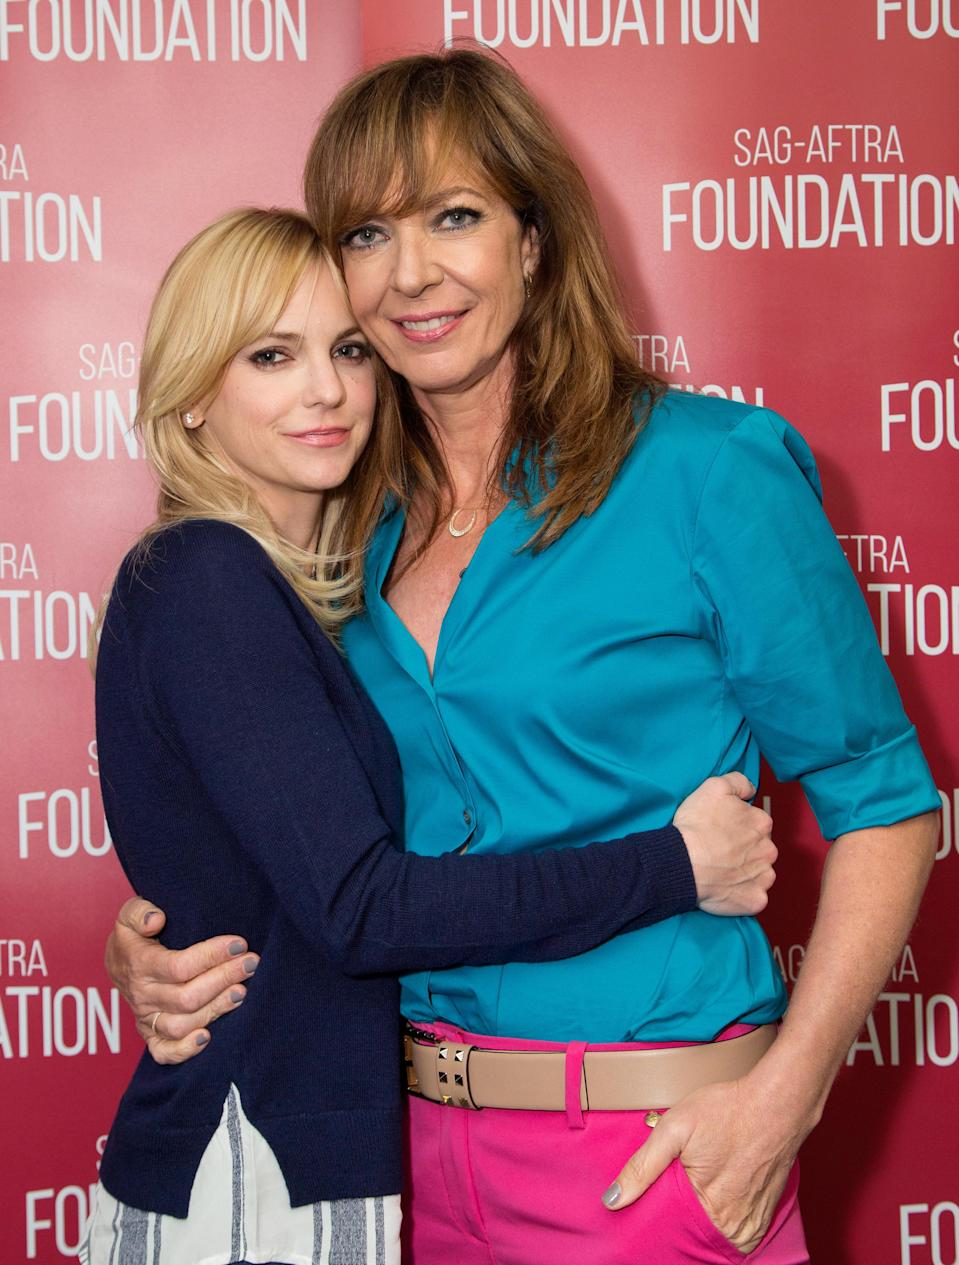 Anna Faris's 'Mom' co-star Allison Janney opens up about how the actress is handling her breakup with Chris Pratt.